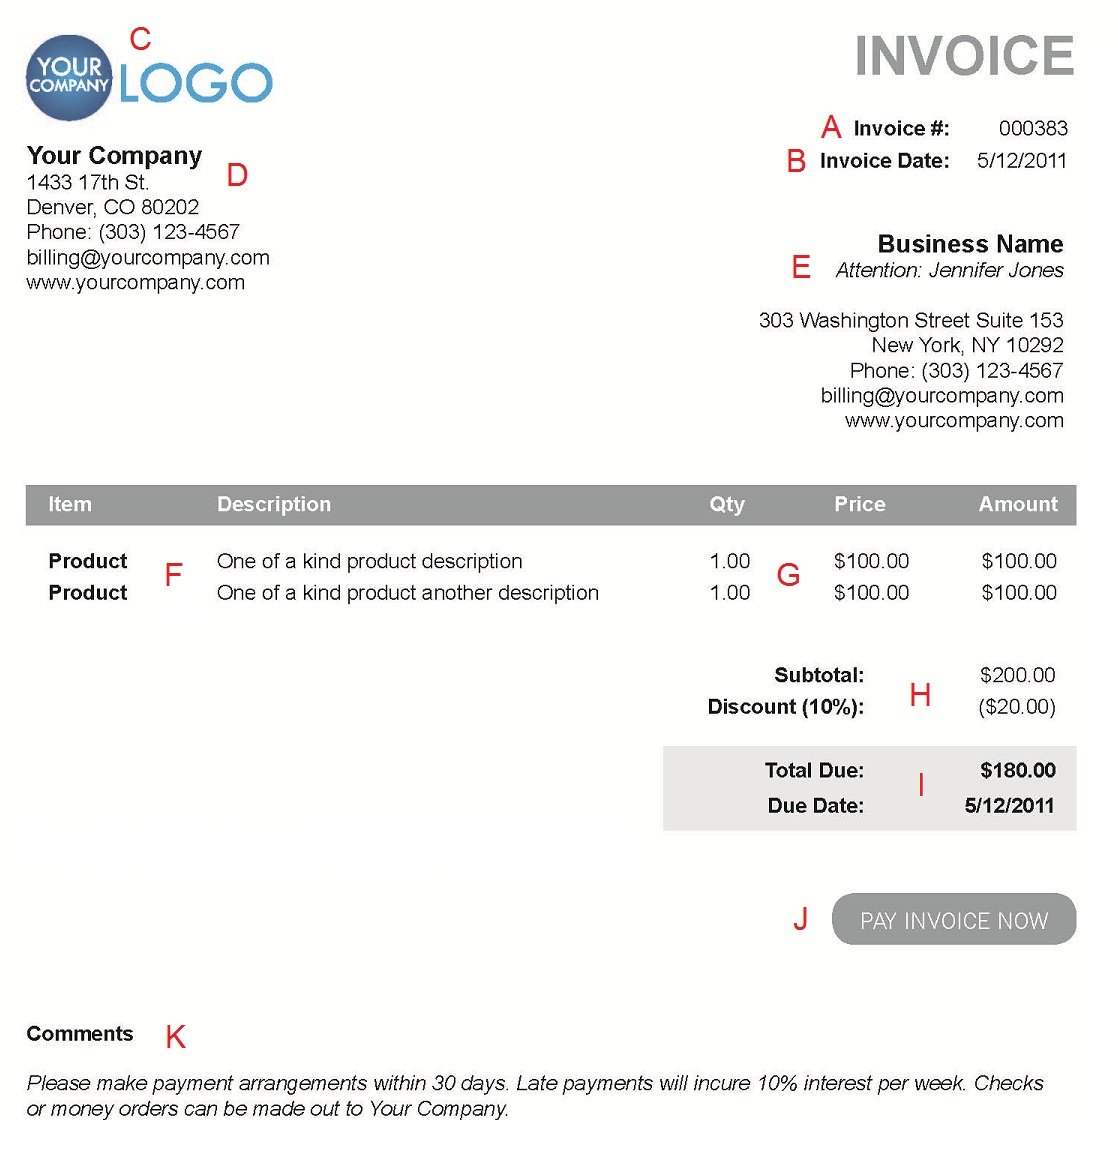 Usdgus  Pleasant The  Different Sections Of An Electronic Payment Invoice With Foxy A  With Awesome Print Receipt Online Also Tneb E Receipt In Addition Advance Payment Receipt And Apcoa Receipts As Well As Rent Receipt In Word Format Additionally Grocery Store Receipt Advertising From Paysimplecom With Usdgus  Foxy The  Different Sections Of An Electronic Payment Invoice With Awesome A  And Pleasant Print Receipt Online Also Tneb E Receipt In Addition Advance Payment Receipt From Paysimplecom